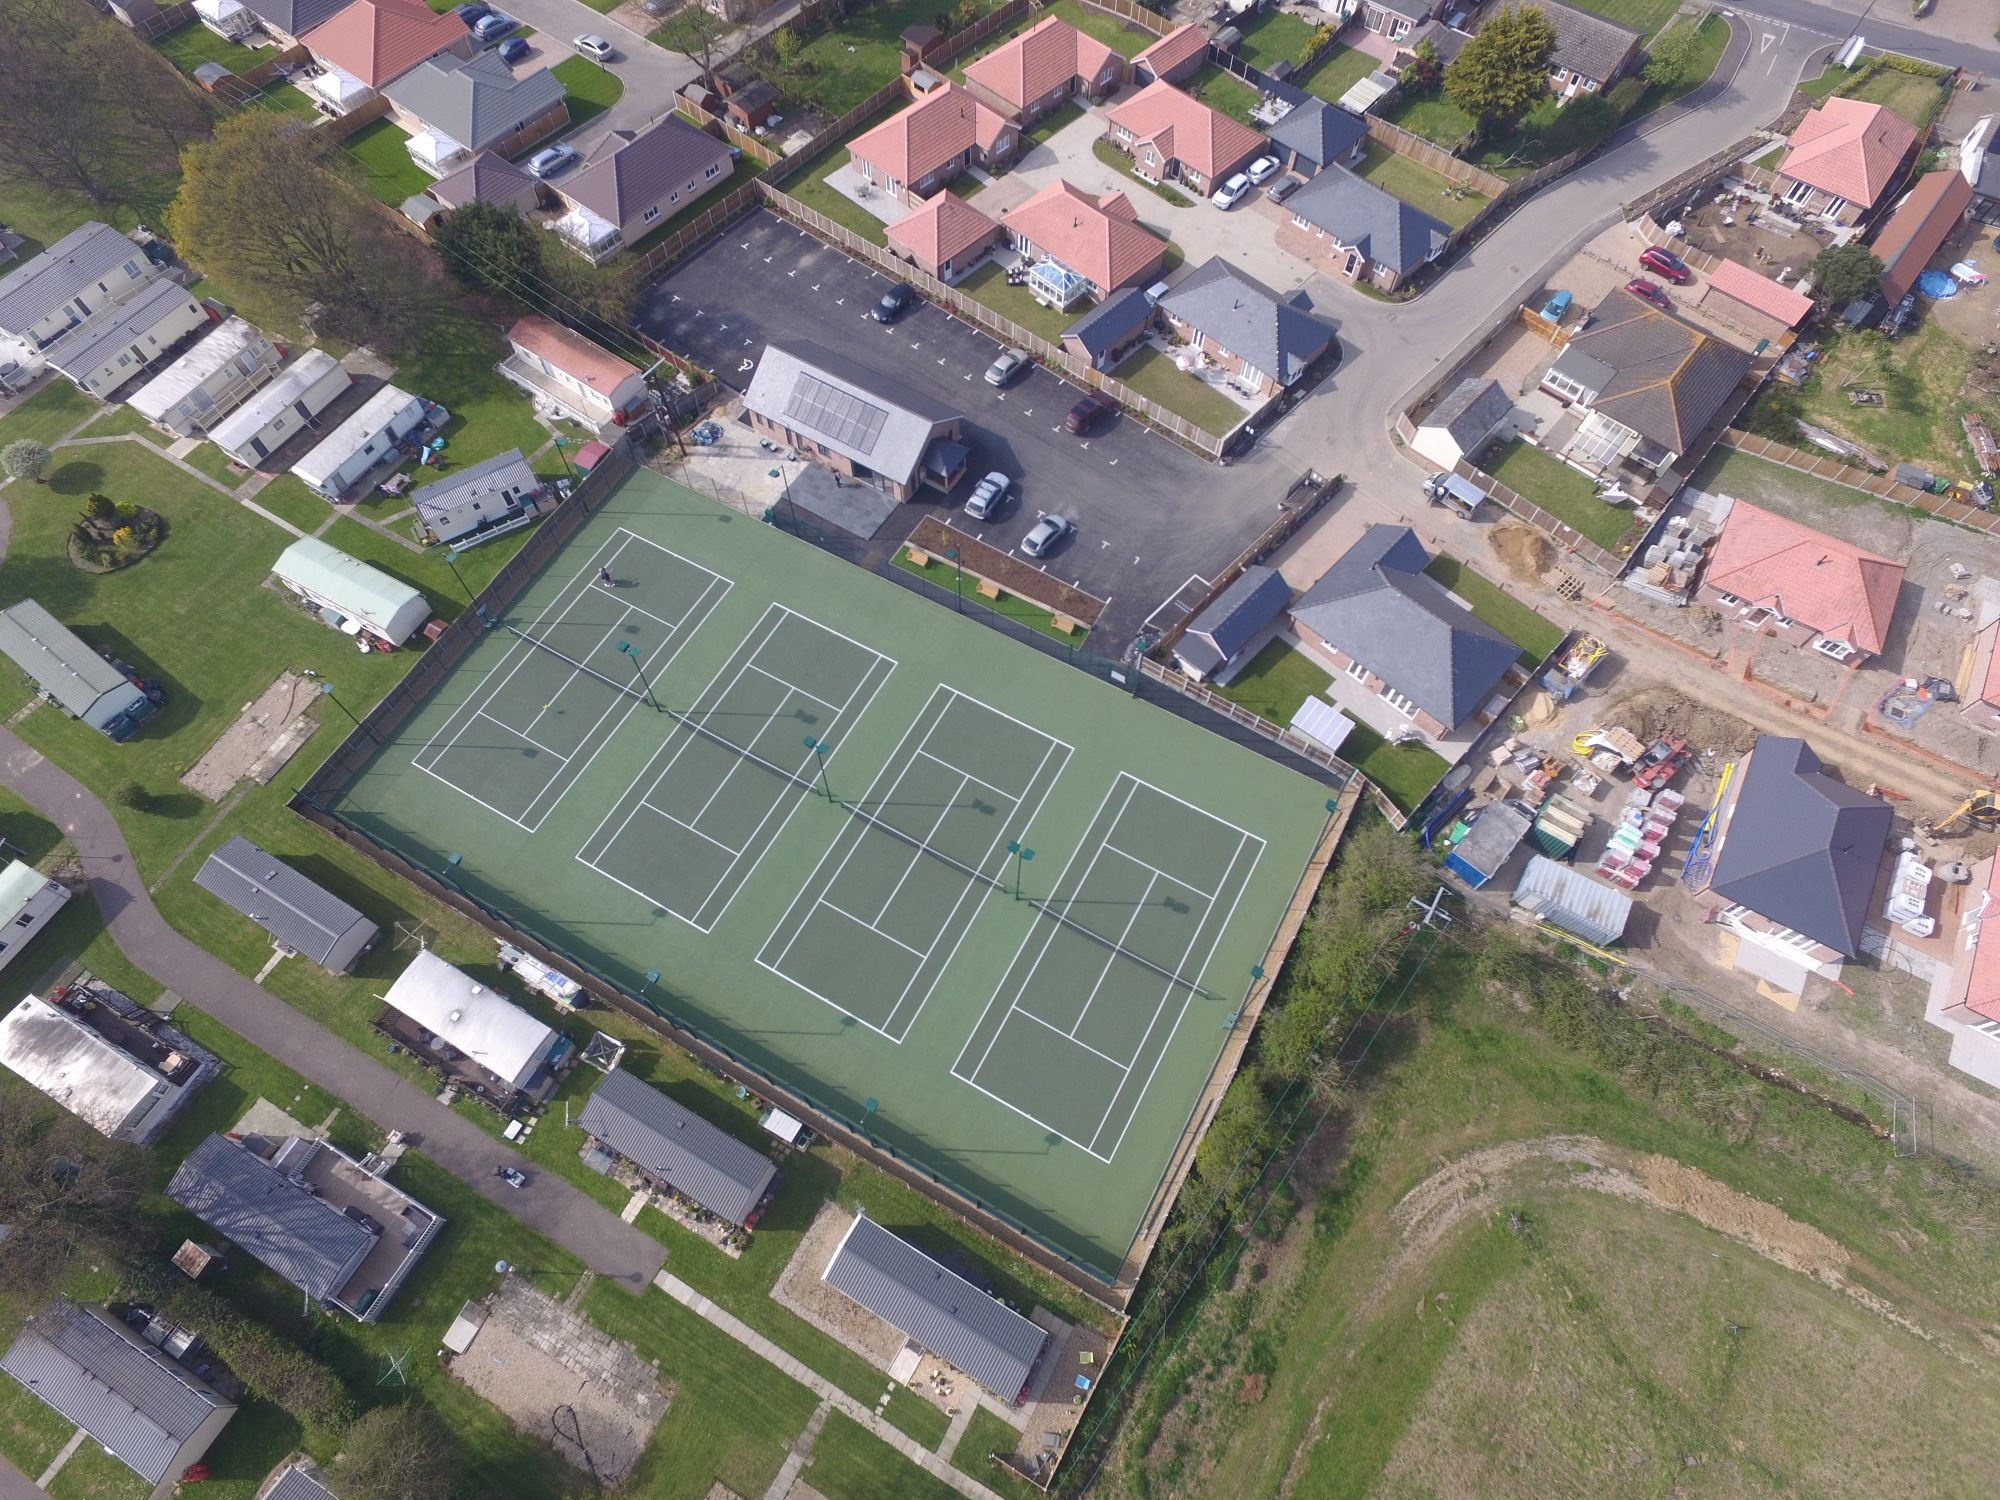 New, fully compliant SAPCA hard tennis courts for a tennis club in Essex